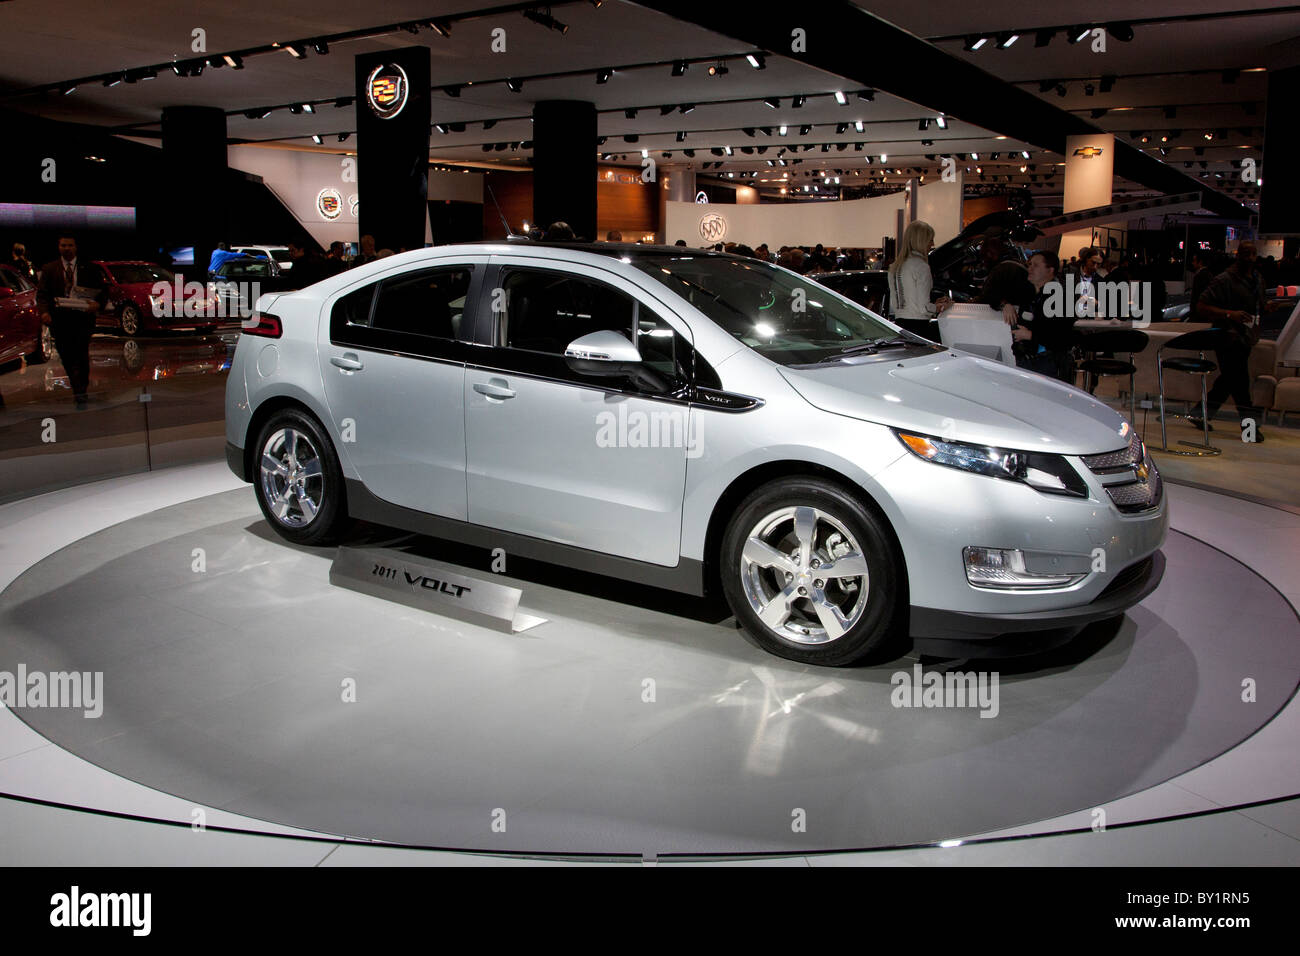 has leading headquarters volt chevrolet displayed in been of auto designer general designed motors s gms world boss chevy the who at is appointed countrys nigerian detroit aliyu ambitions jelani